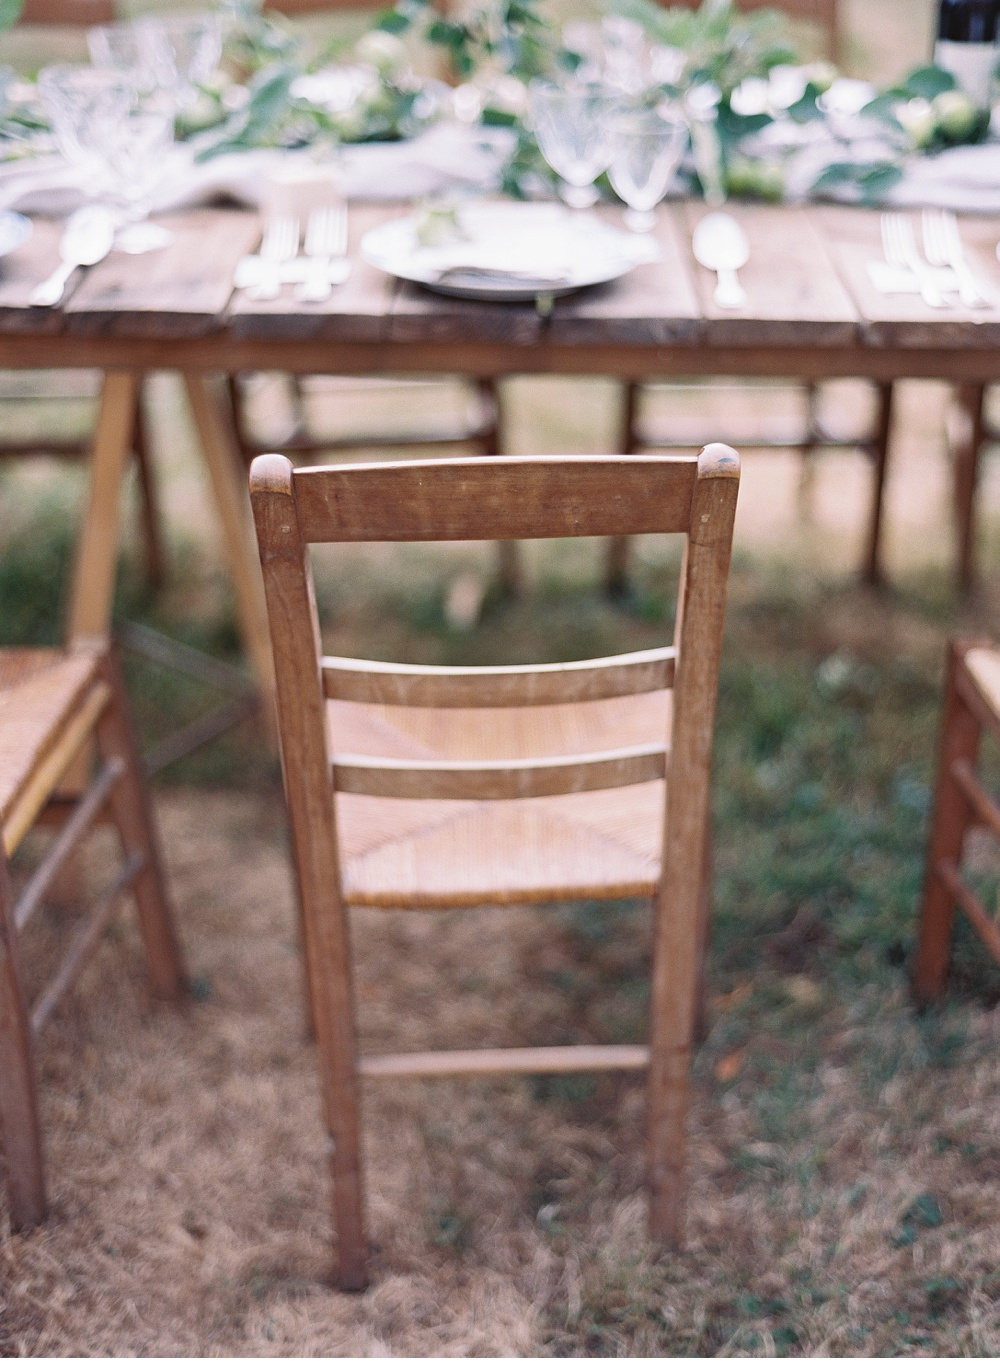 Wedding_France_Dangeau_Chateau_Bouthonvilliers©MadalinaSheldon_0003.jpg